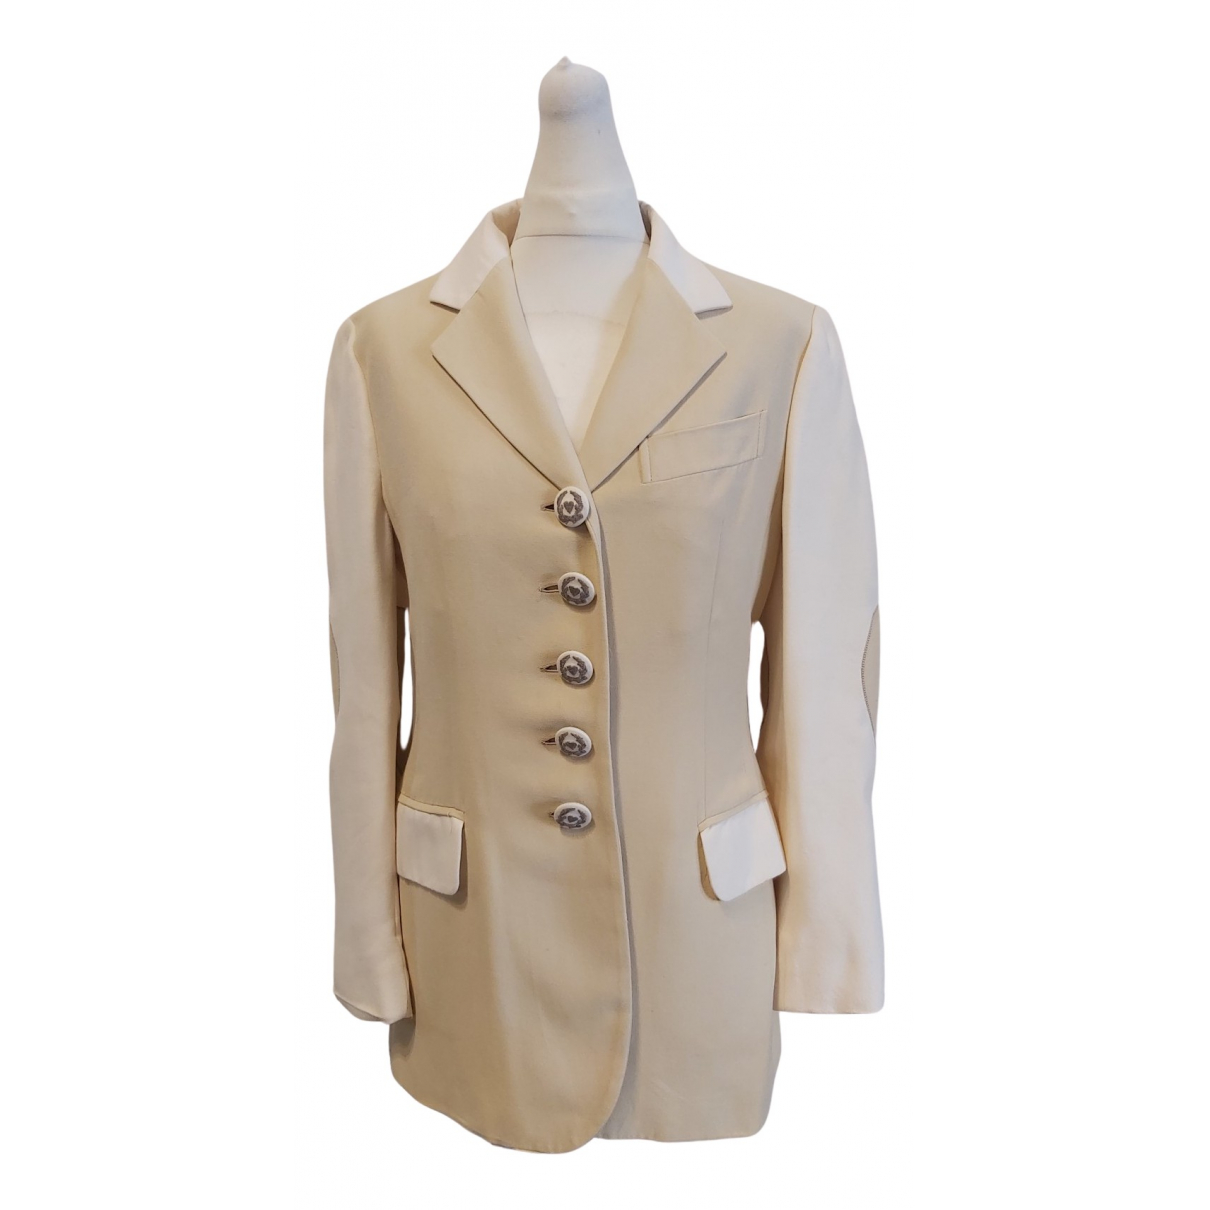 Moschino Cheap And Chic \N Jacke in  Kamel Baumwolle